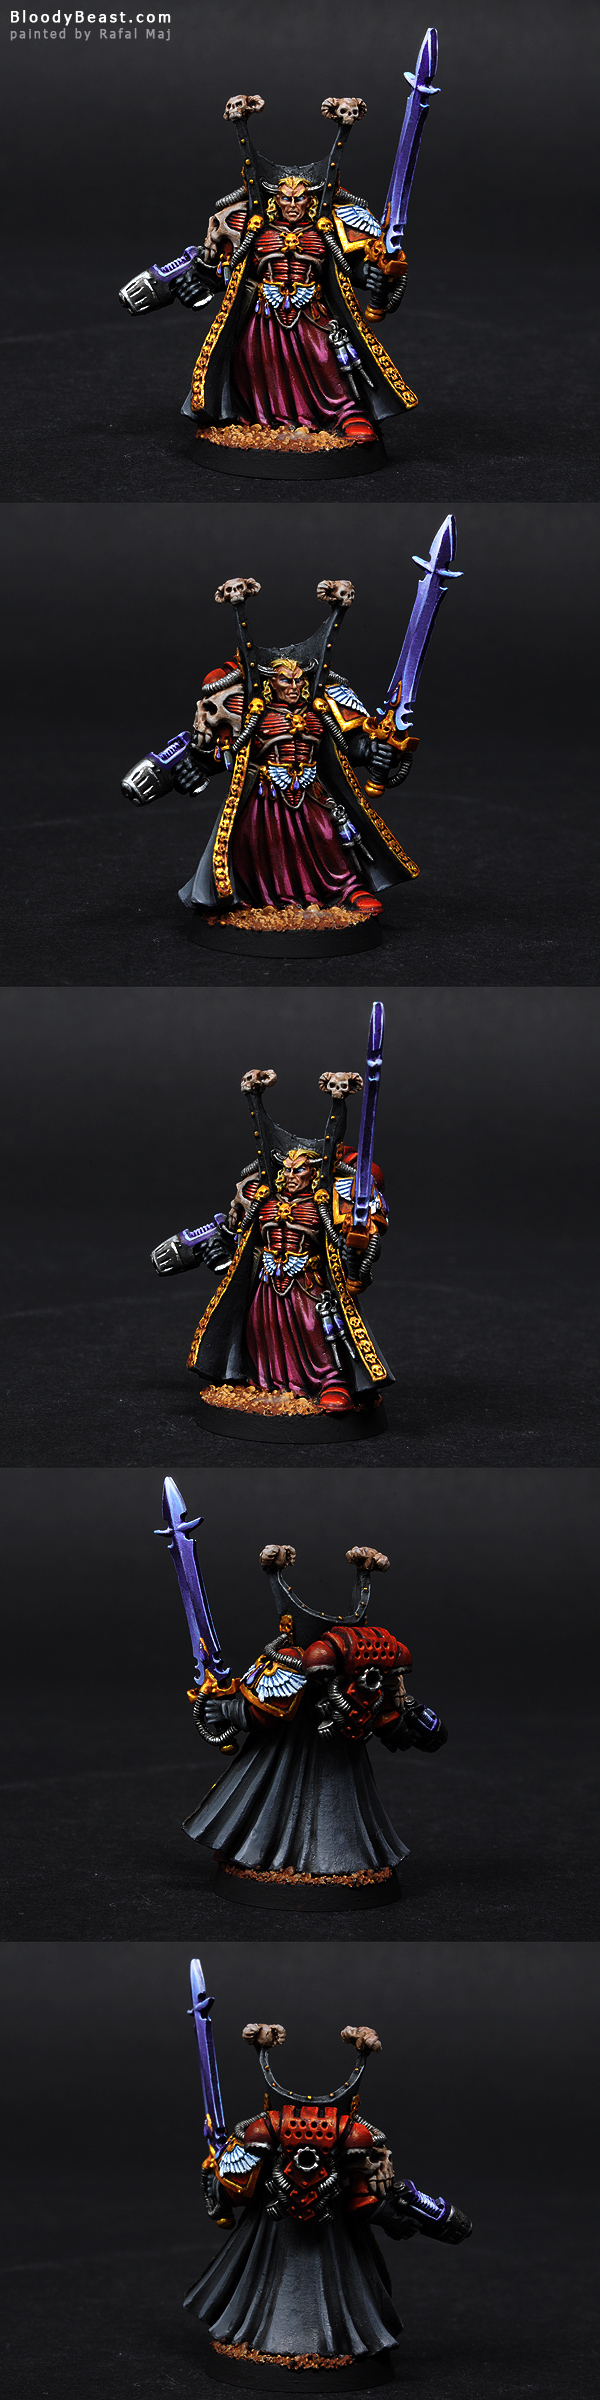 Blood Angels Mephiston, Lord of Death painted by Rafal Maj (BloodyBeast.com)